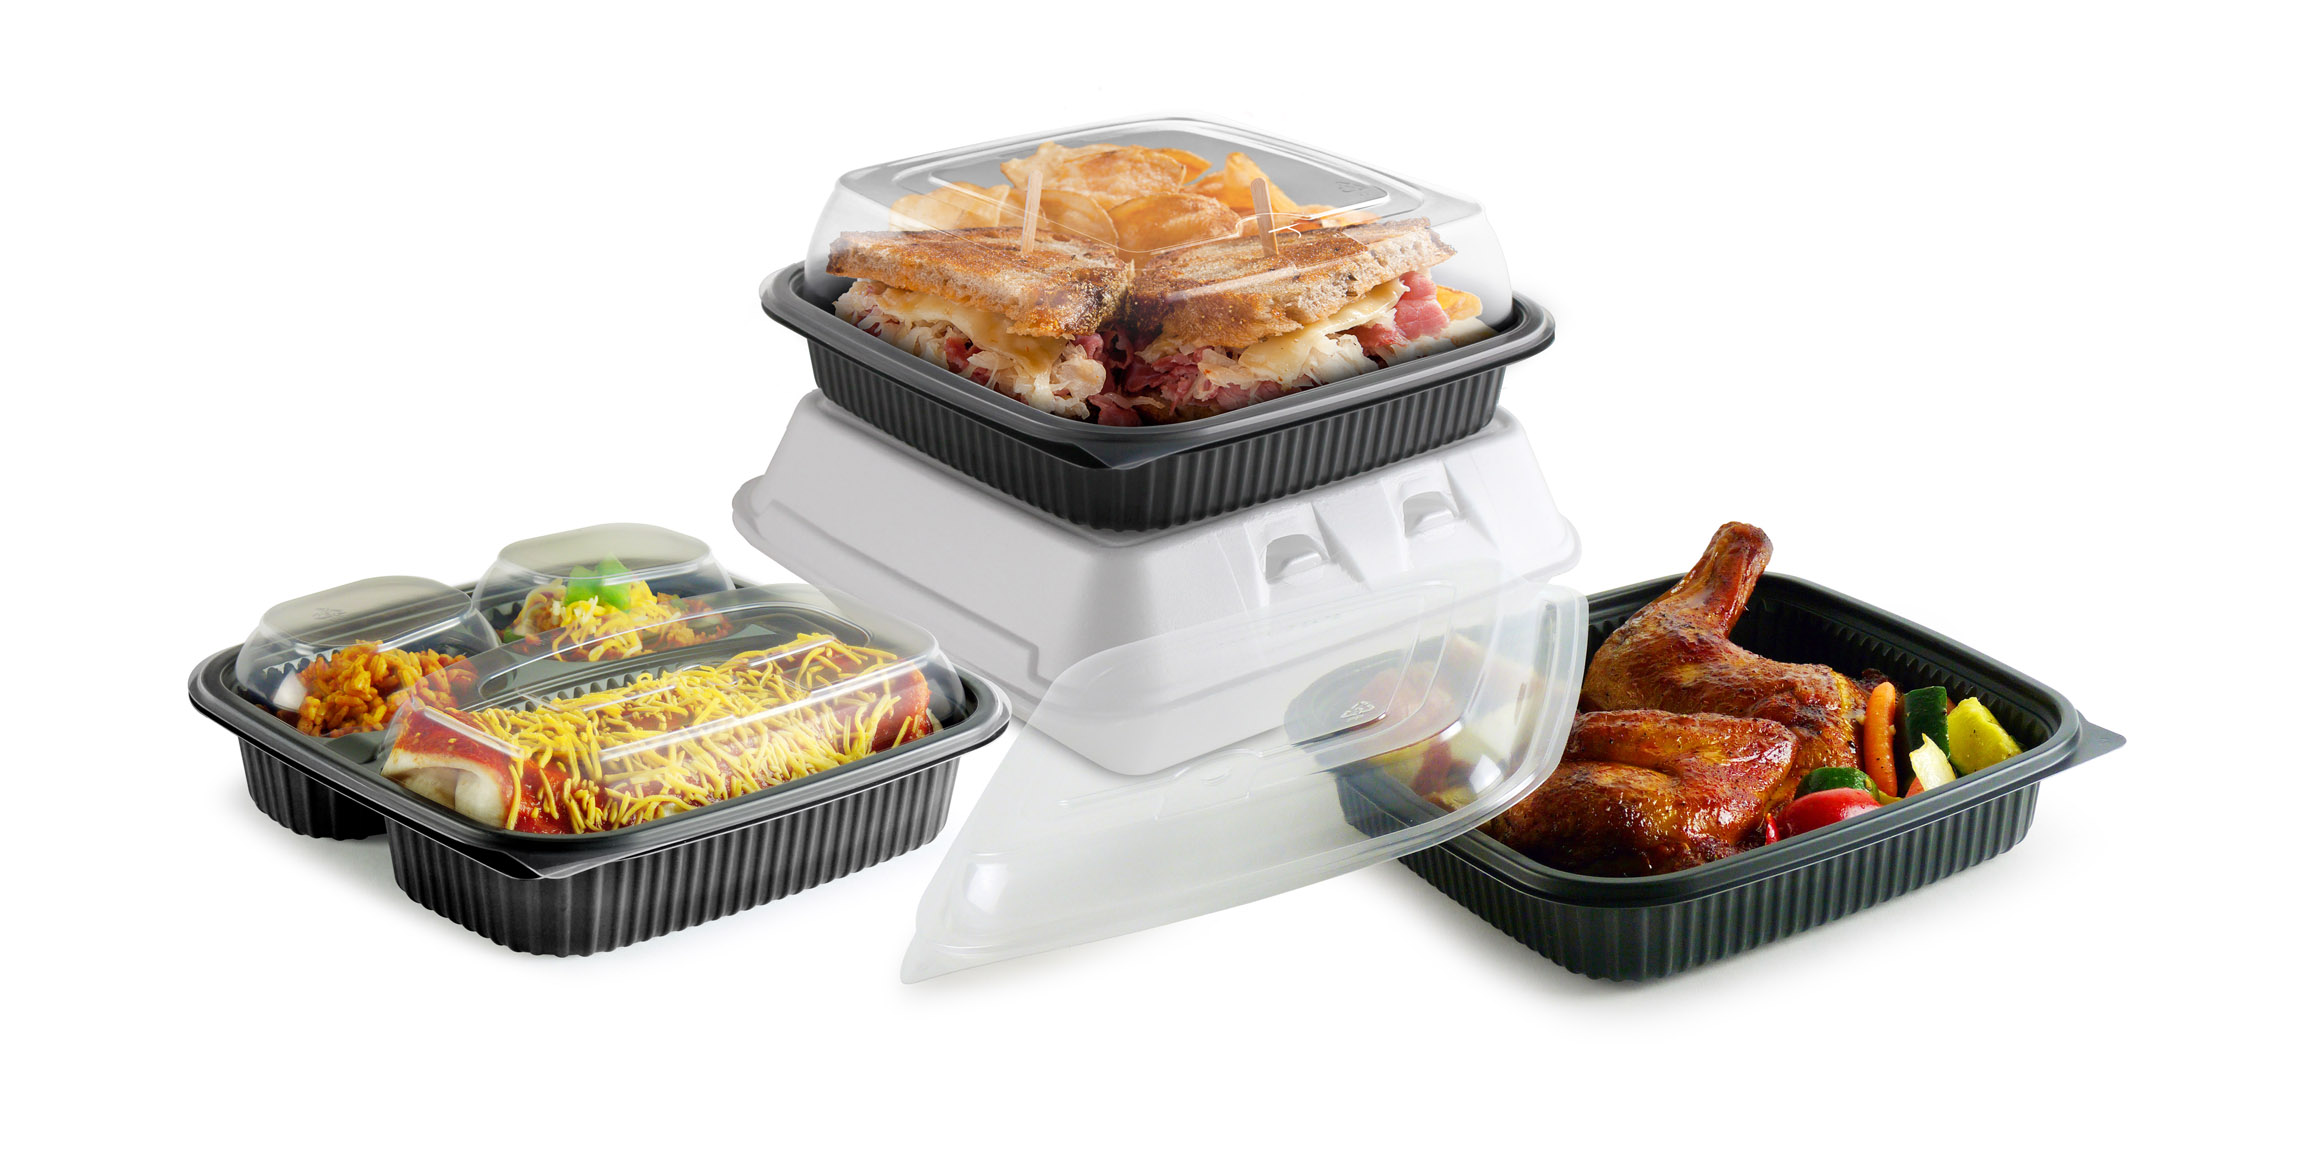 Trends in Food Packing Photo